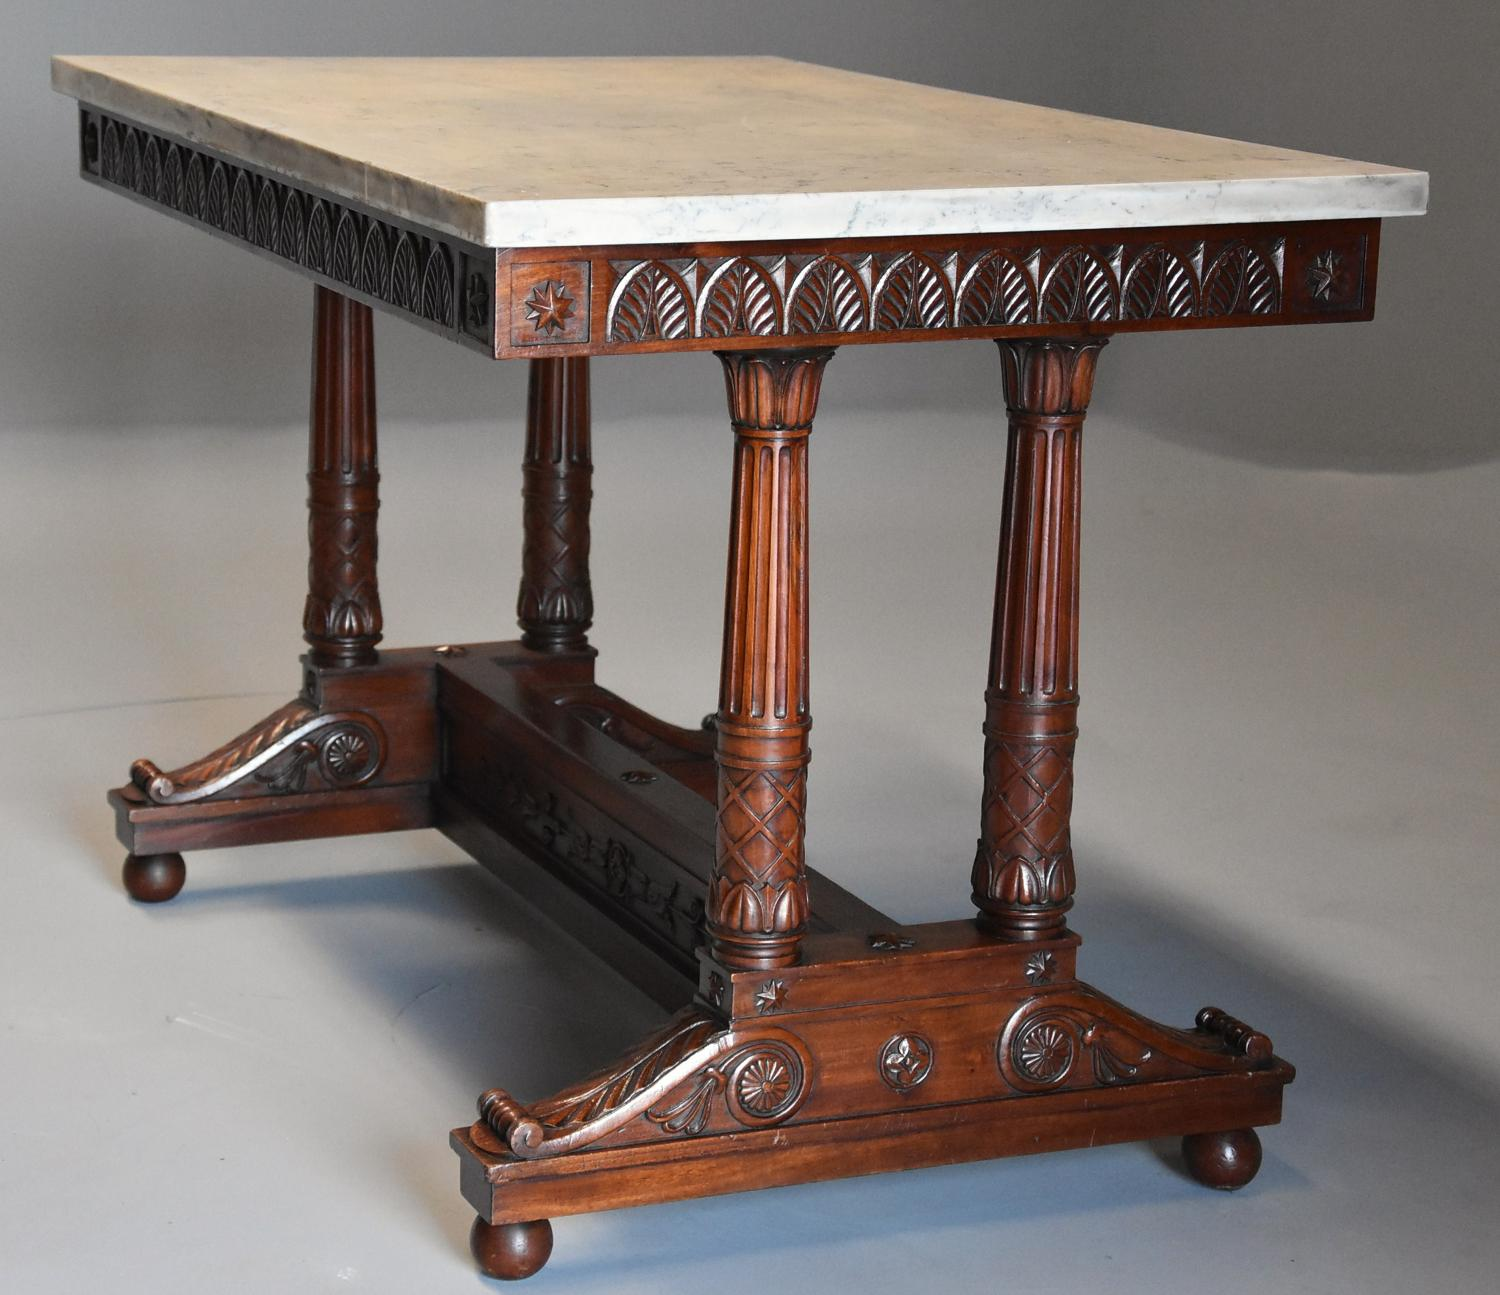 Rare fine quality 19thc French Empire centre table with marble top